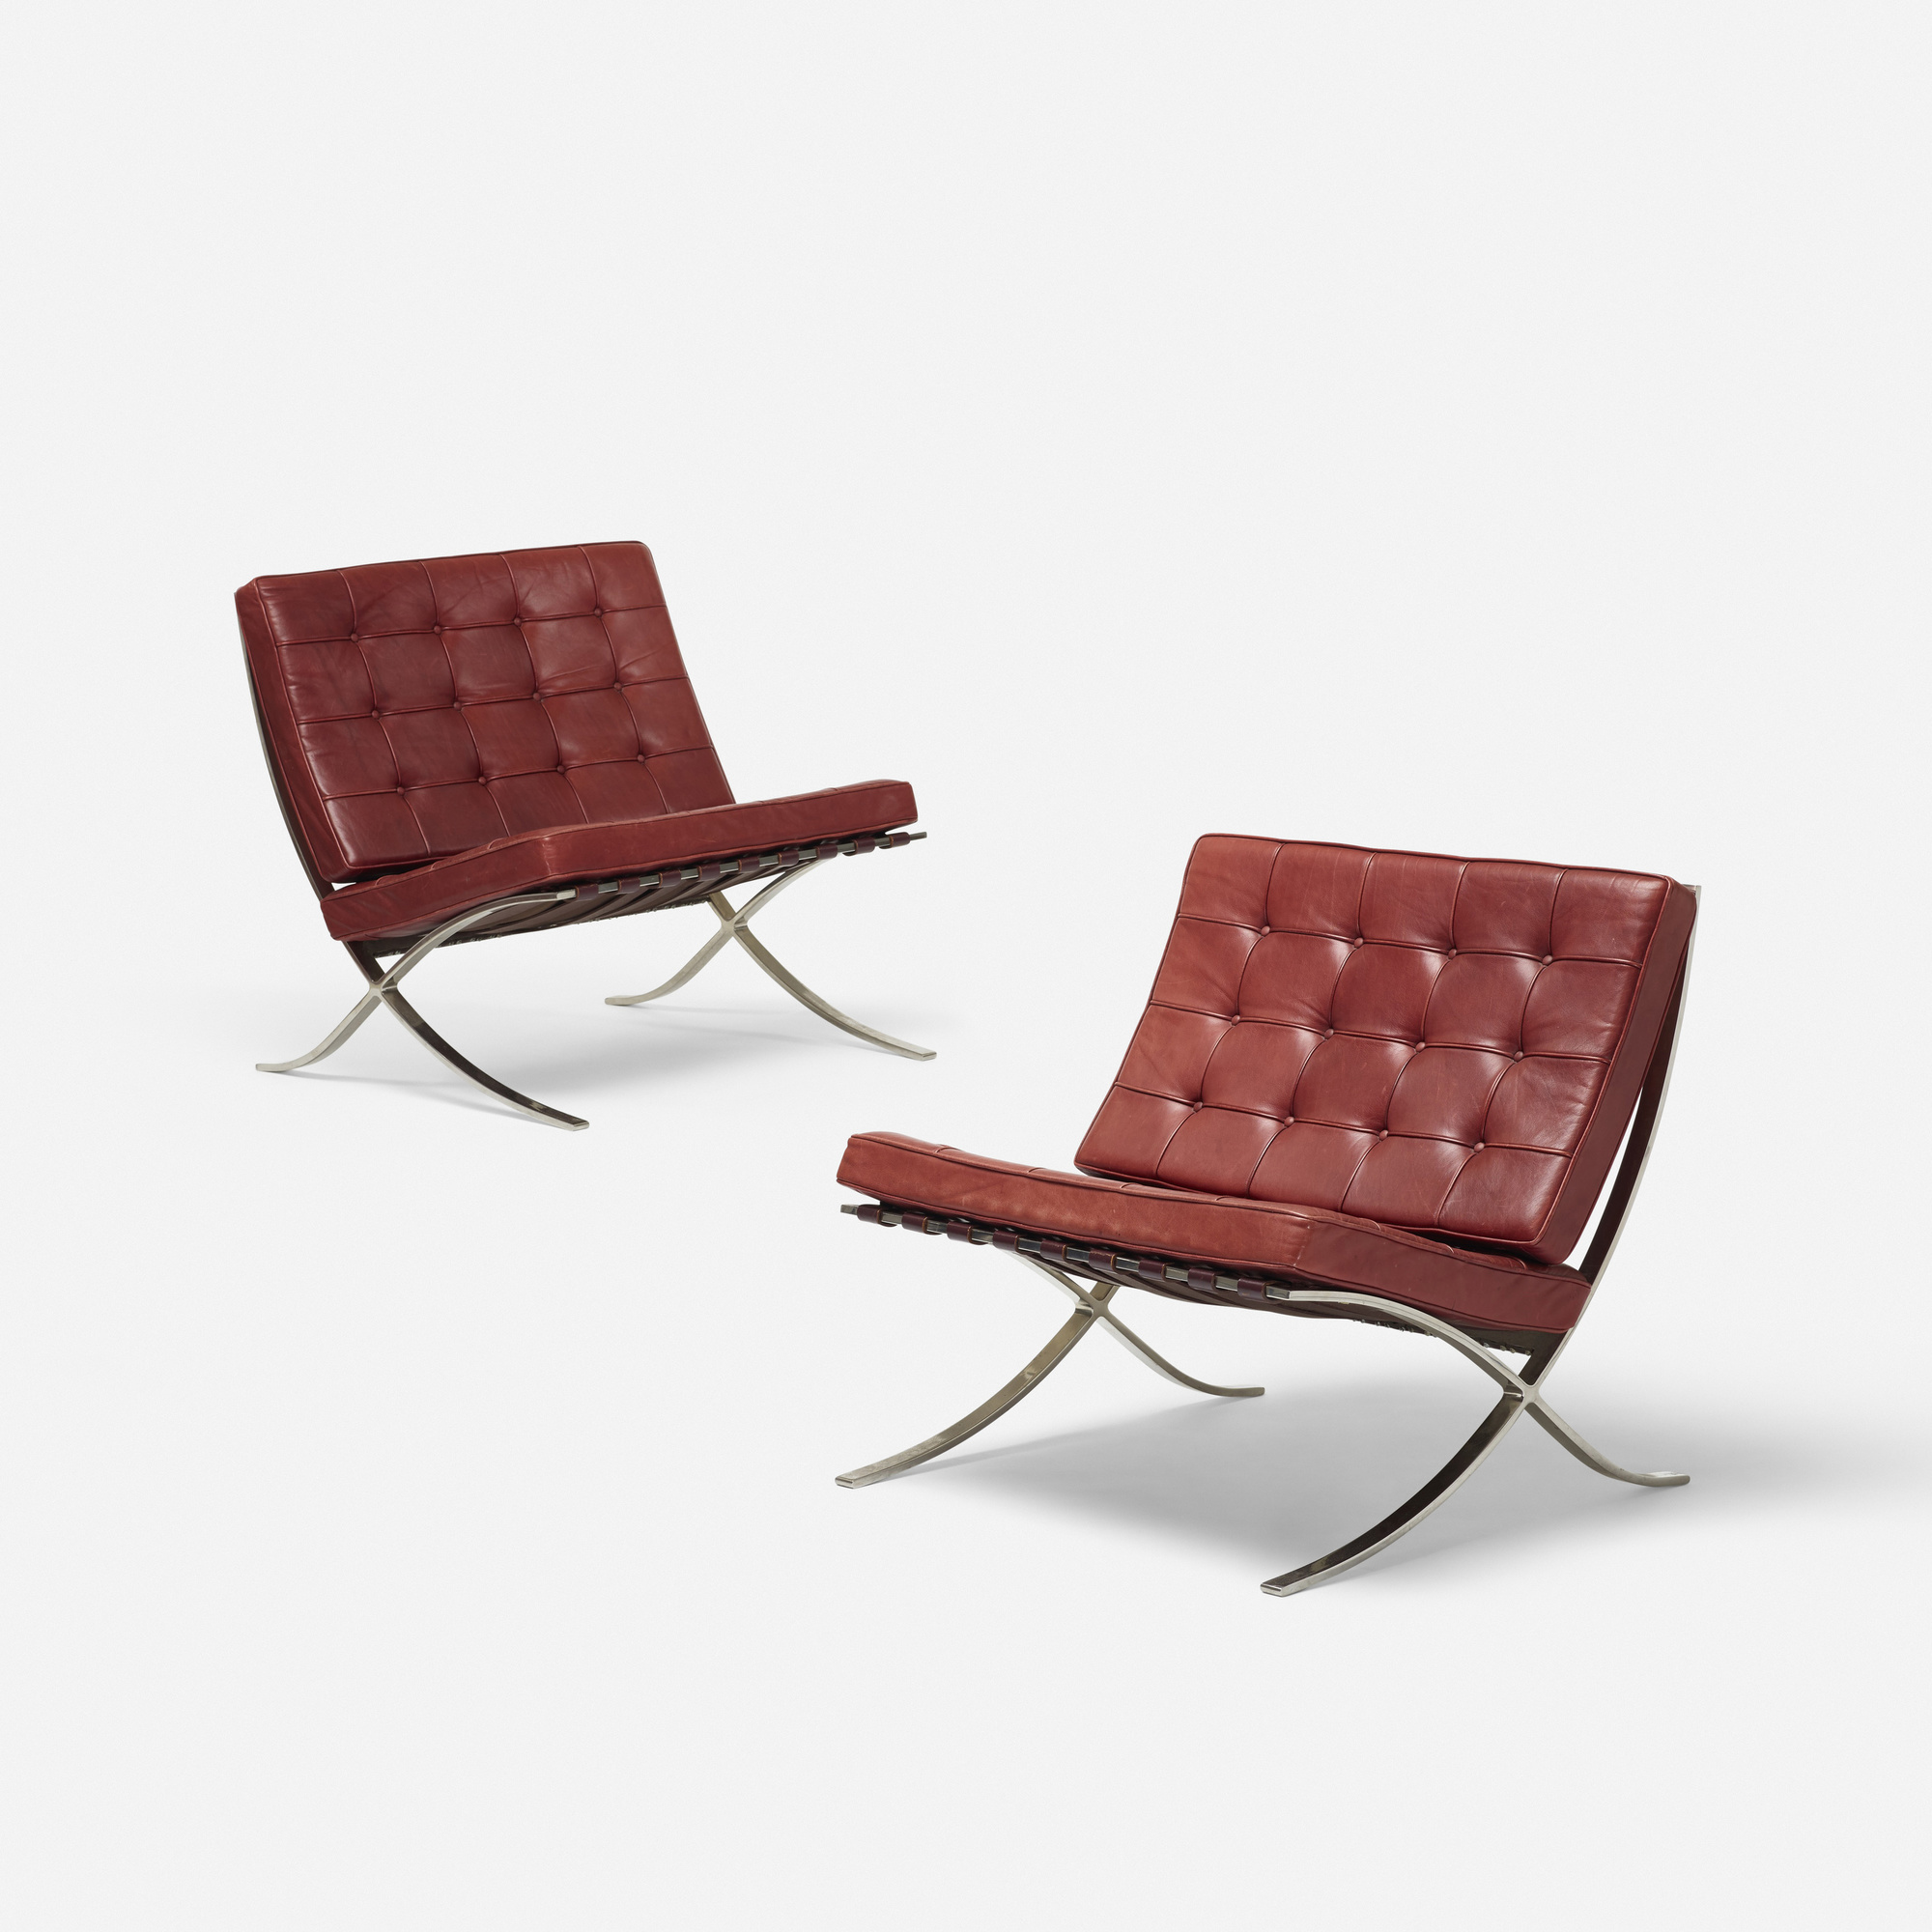 184: Ludwig Mies Van Der Rohe / Barcelona Chairs, Pair (1 Of 4